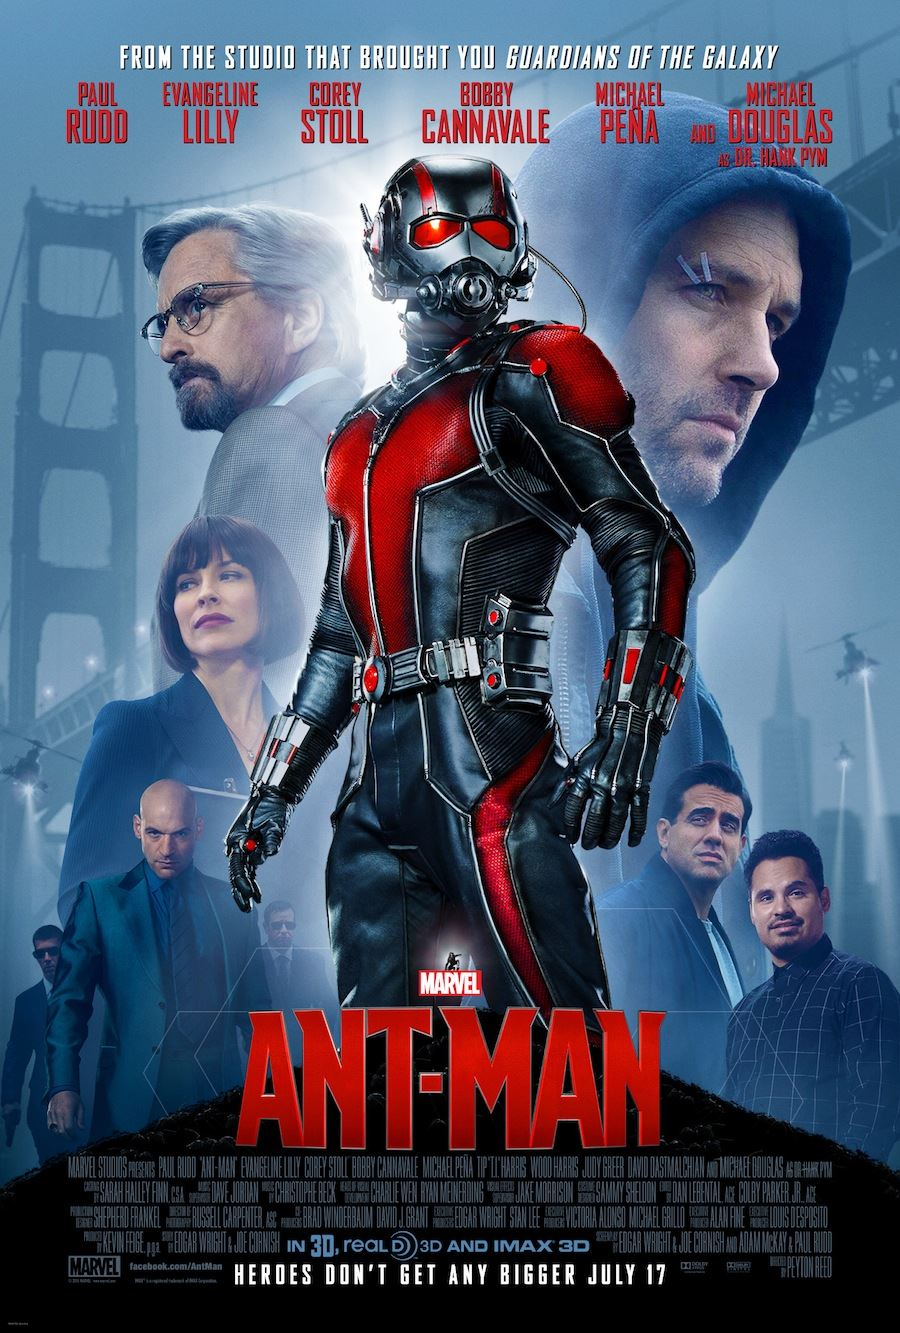 Ant-Man Cast poster